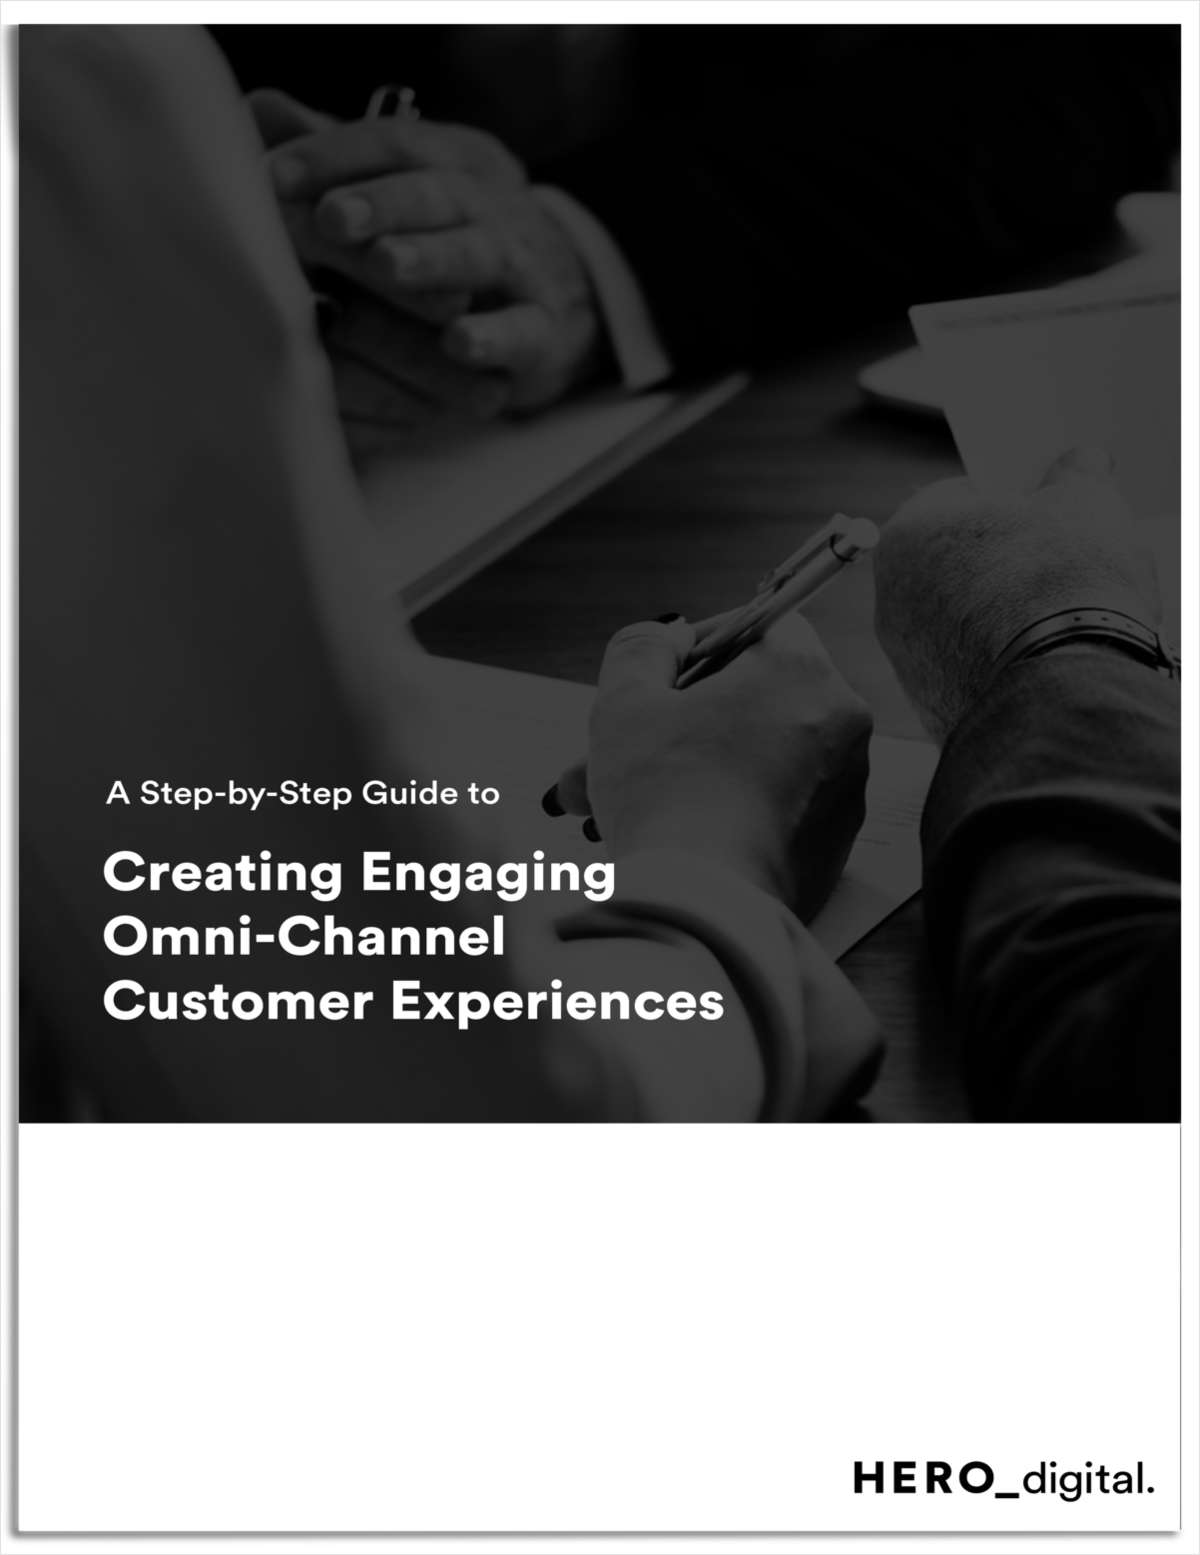 The Step-by-Step Guide to Creating Engaging Omni-Channel Customer Experiences